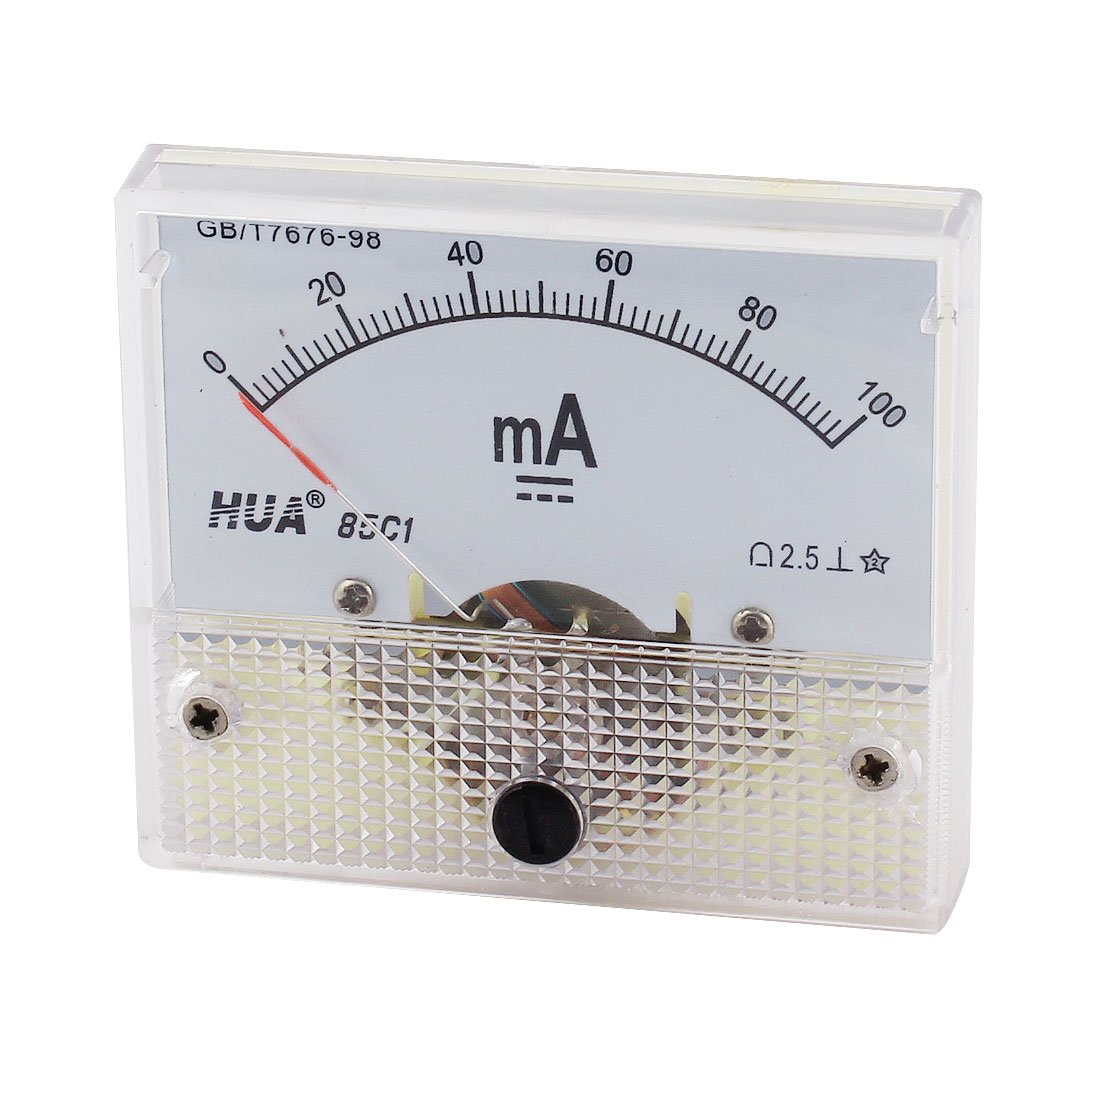 uxcell Analog Current Panel Meter 0-100mA DC Ammeter 64x49x Factory outlet service 85C1